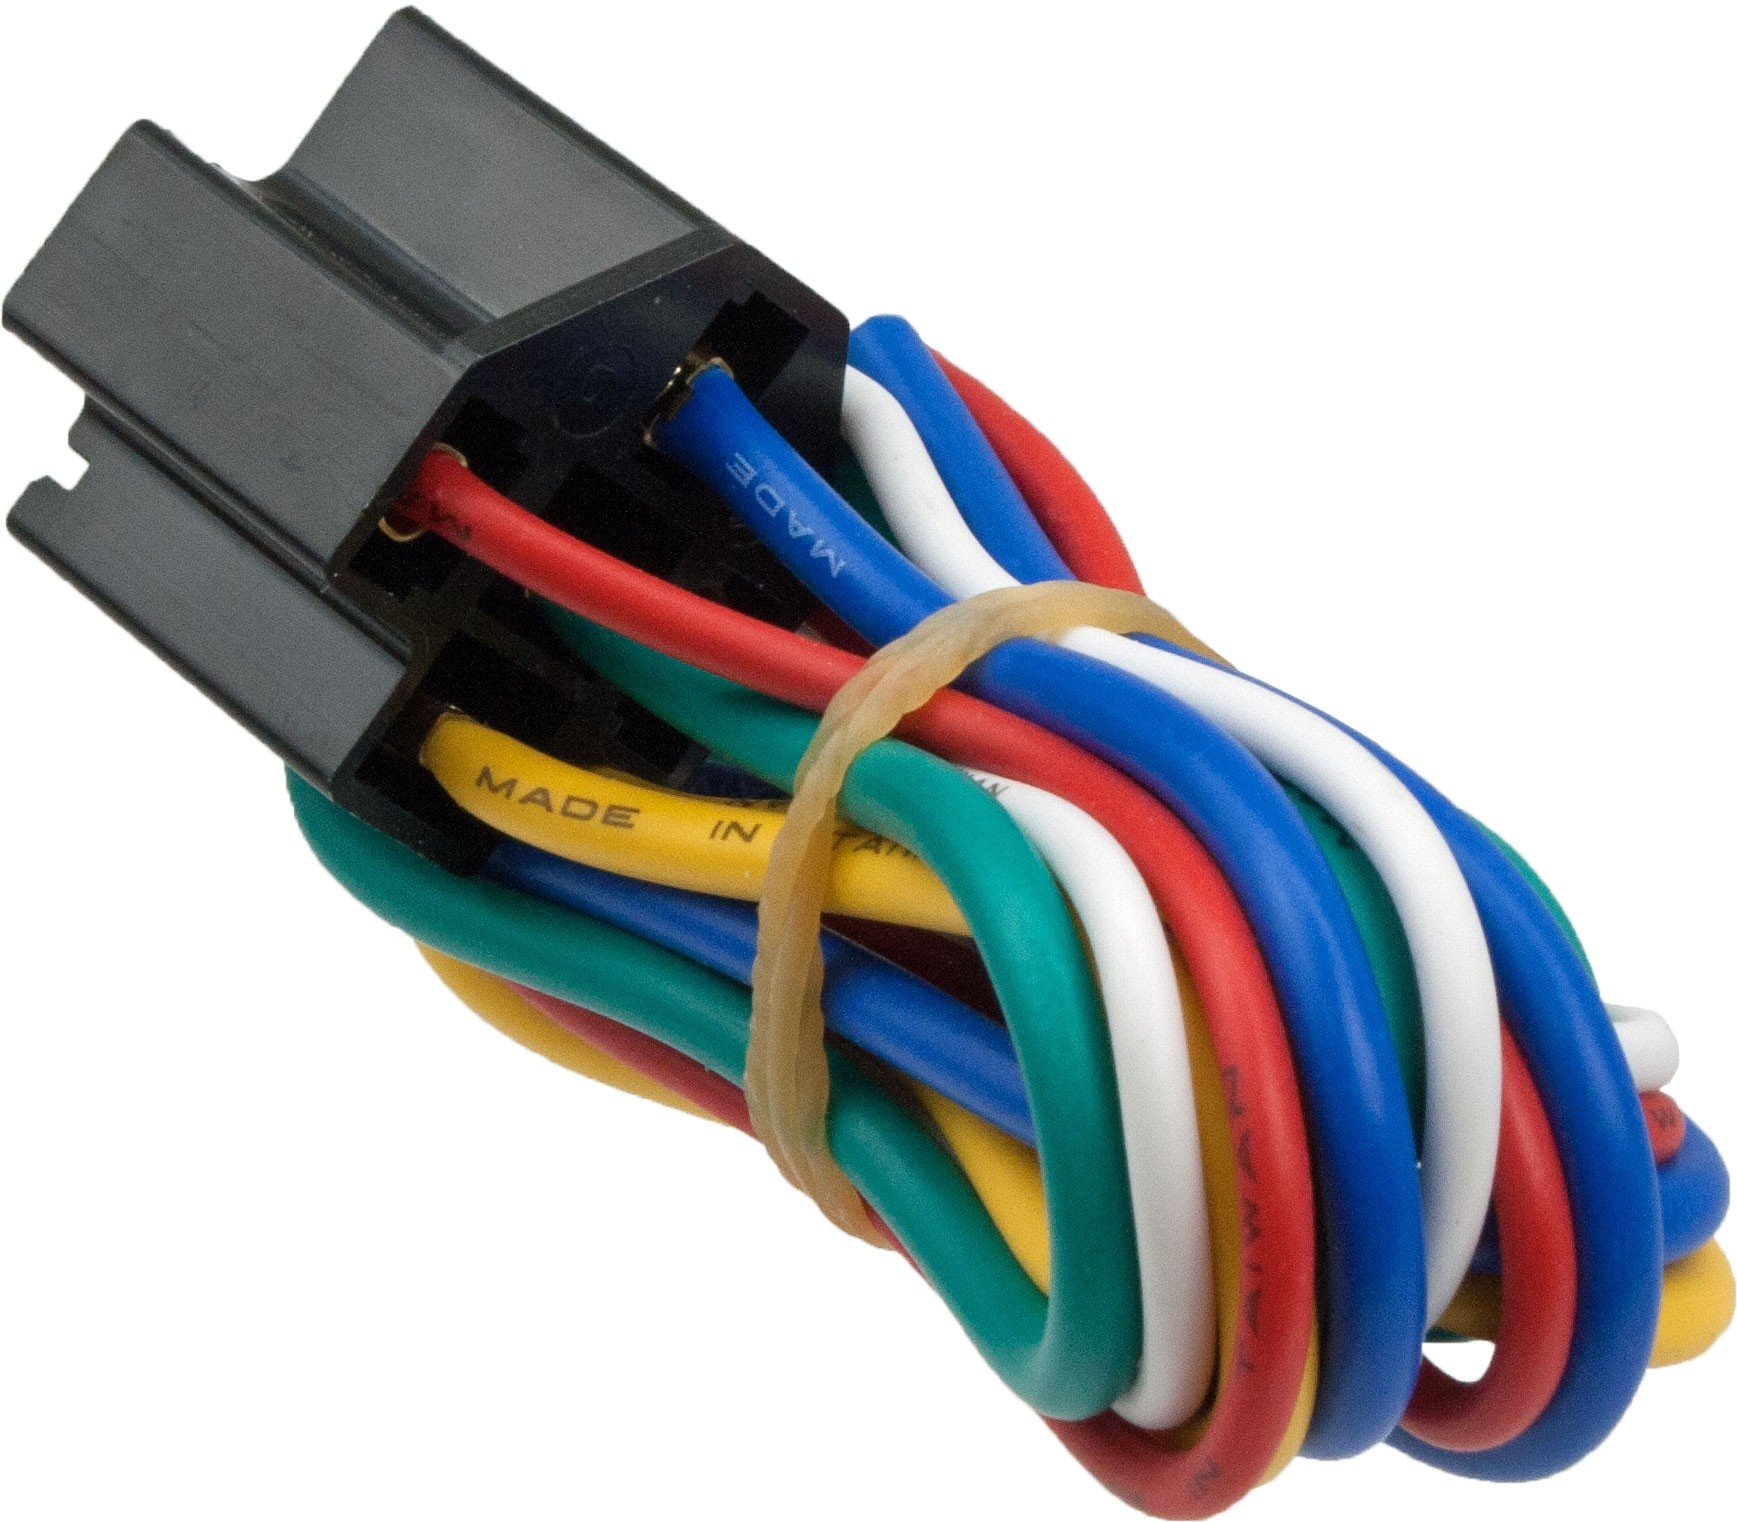 wiring harness connector plugs to resistor trailer wiring harness plugs wiring diagram 3 Wire Harness Connector Automotive Wiring Harness Connectors